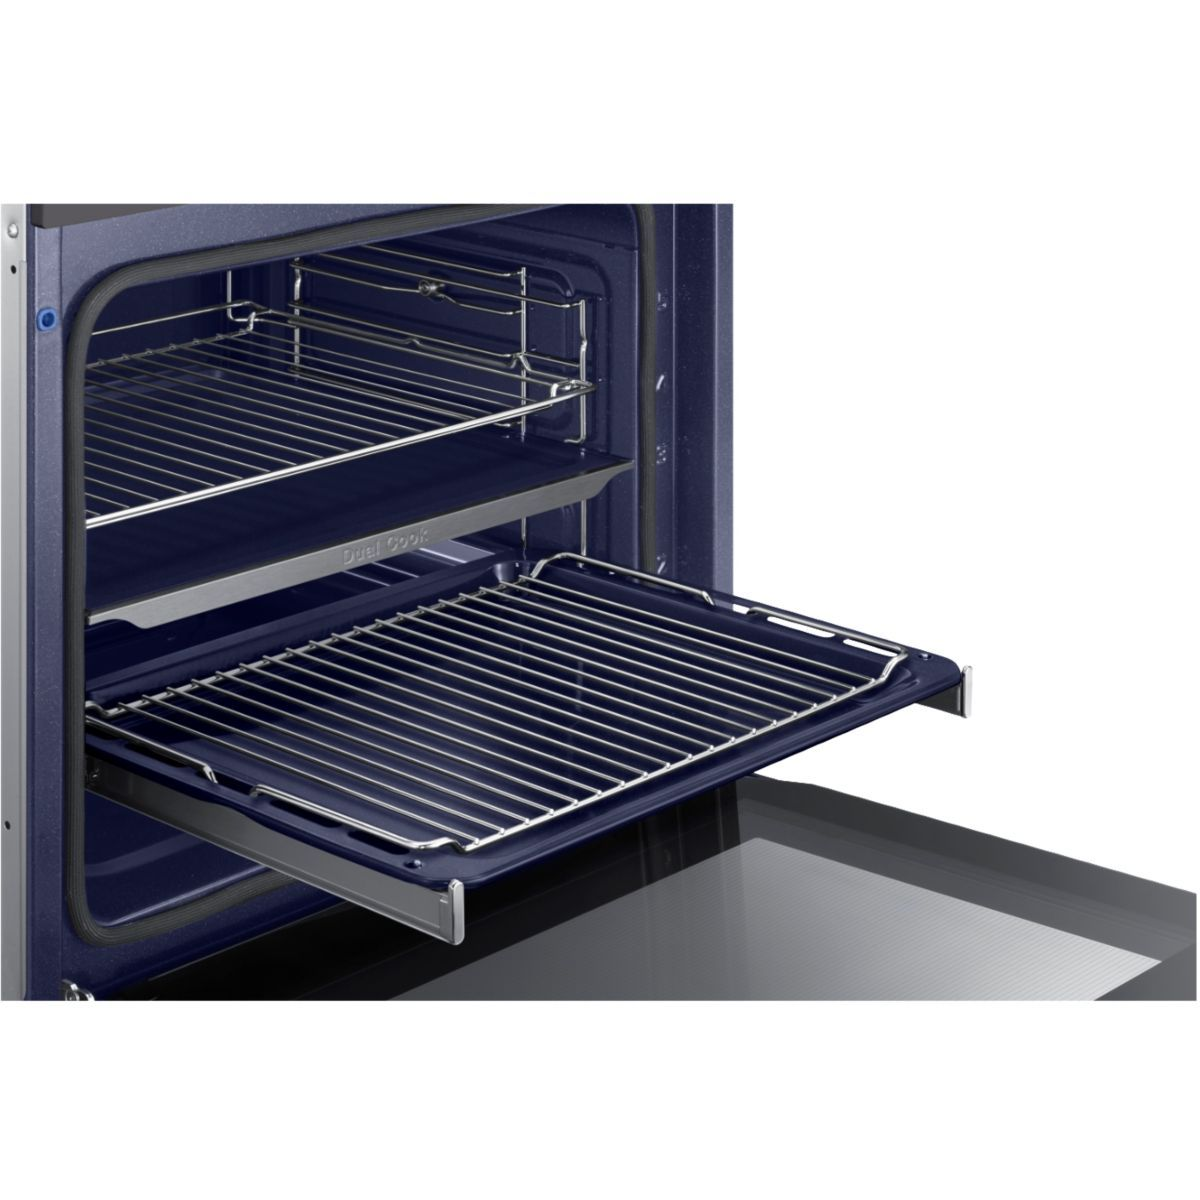 Four Encastrable Dual Cook Nv75k5571rm Taille Taille Unique Four Encastrable Et Four Electrique